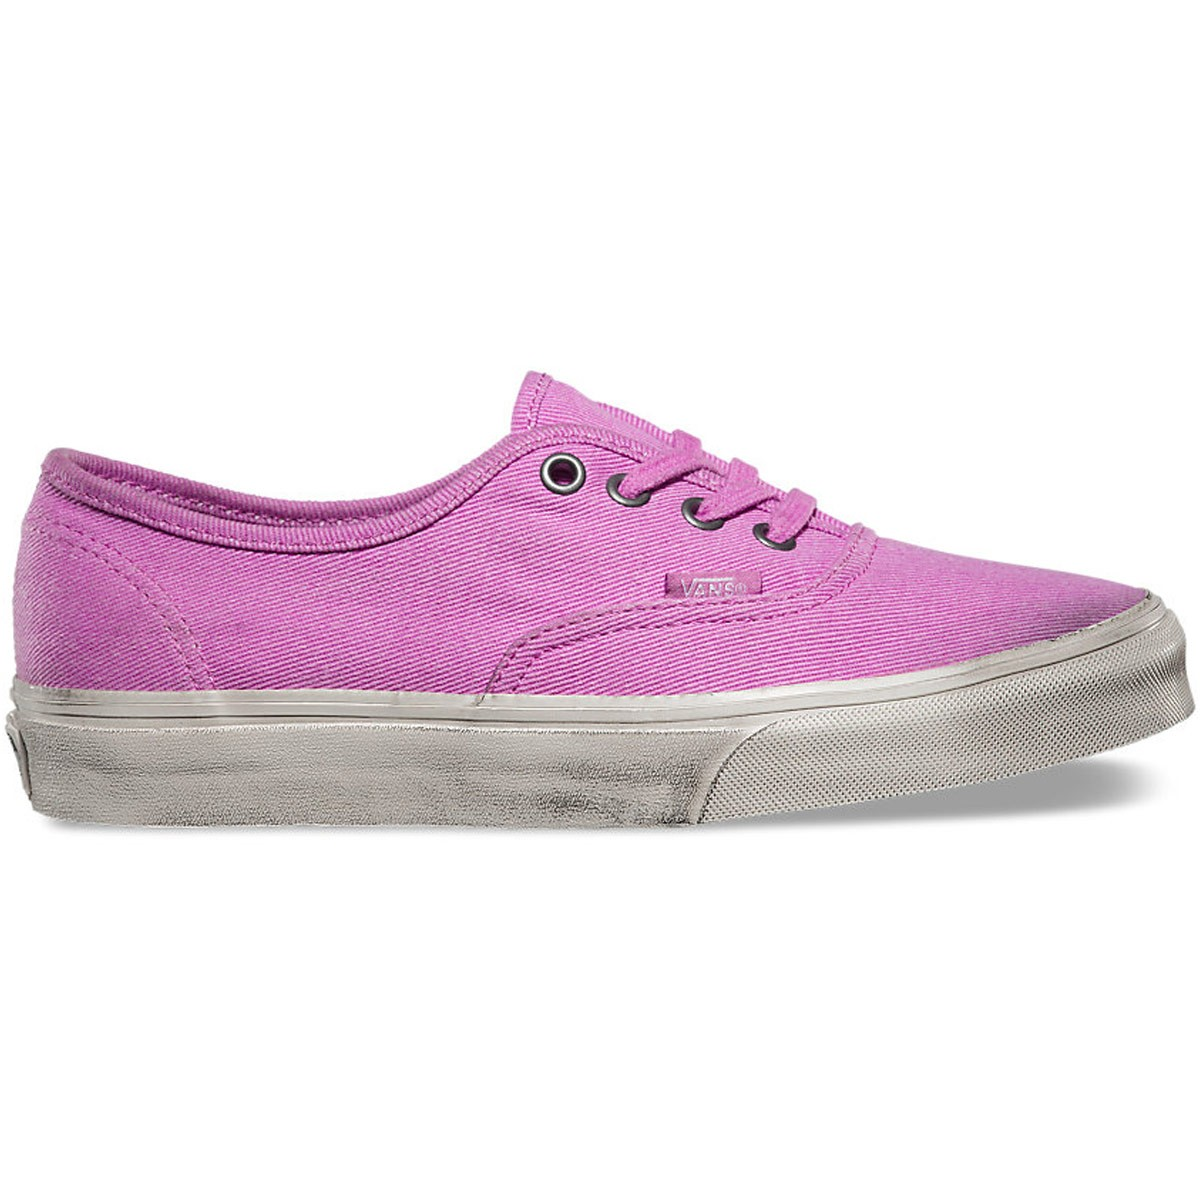 Radiant Orchid Shoes For Sale